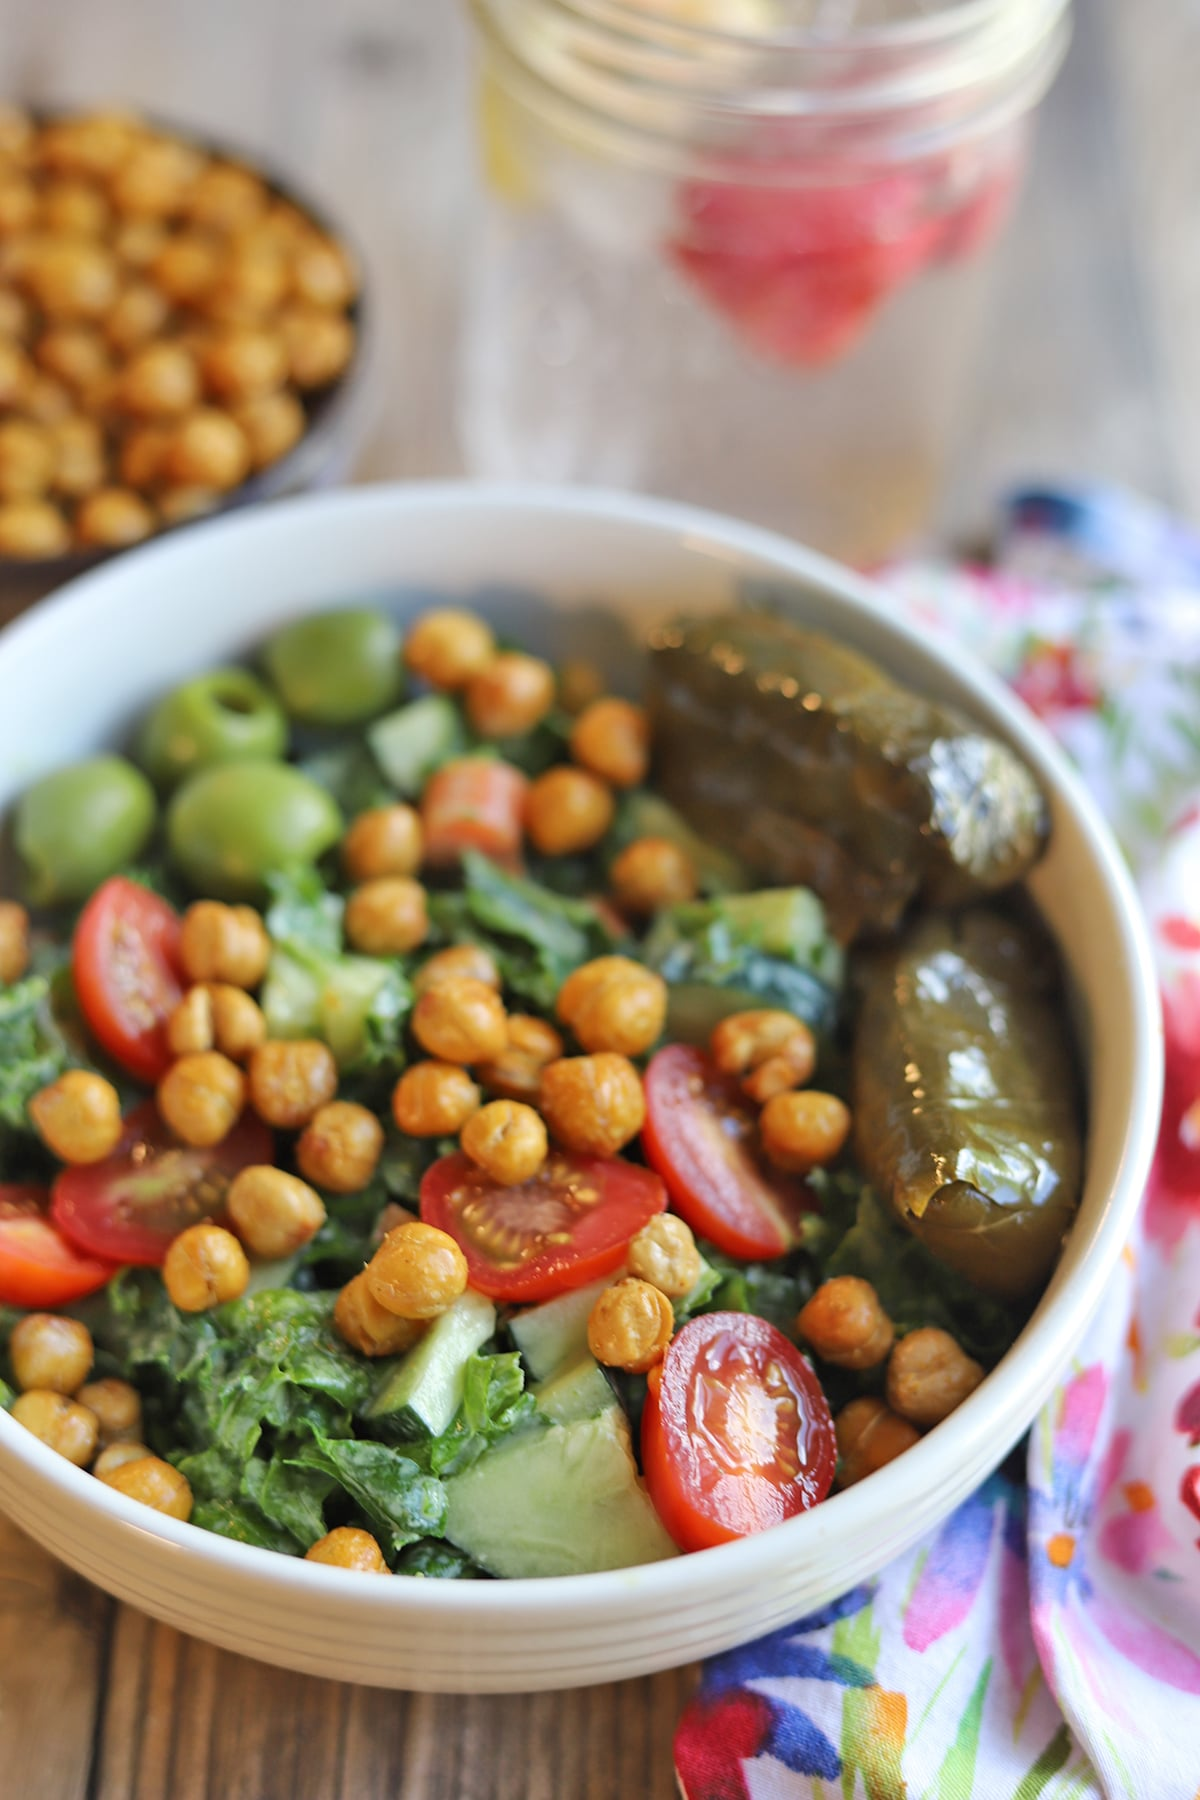 Close up kale salad with dolmas, air fried garbanzo beans, and olives.